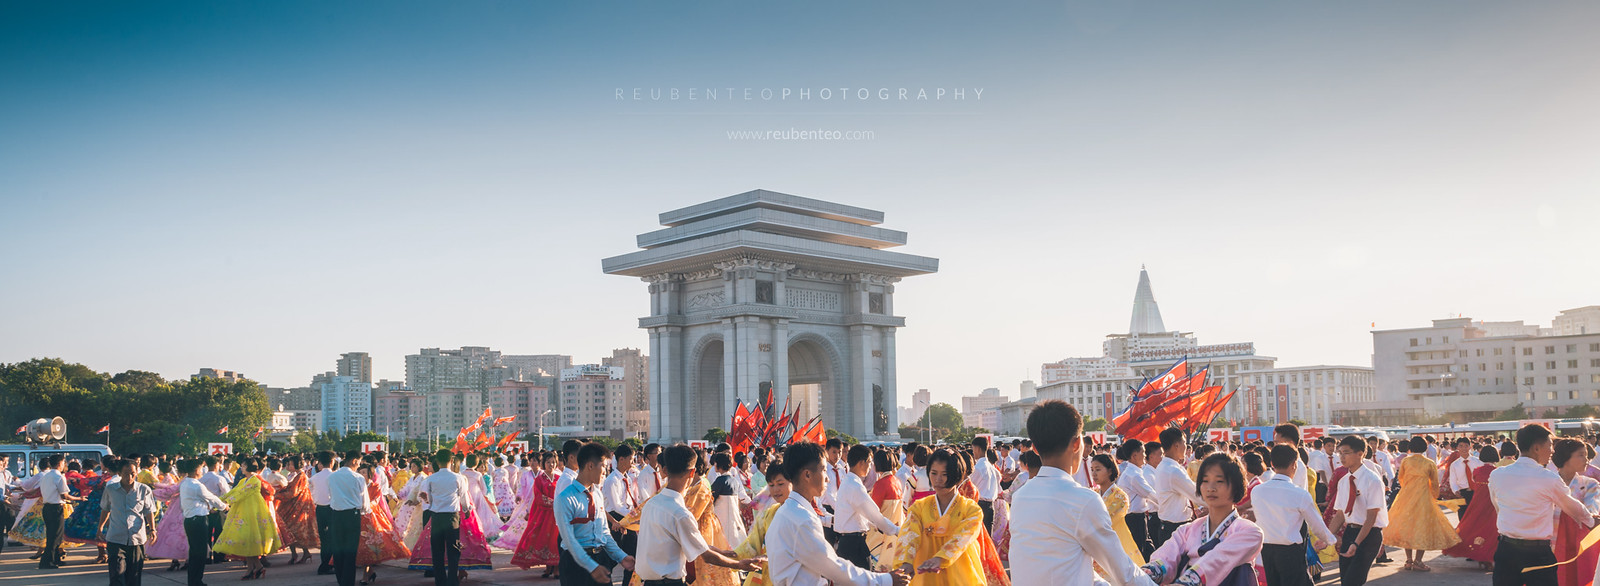 Pyongyang City Mass Dancing Celebration